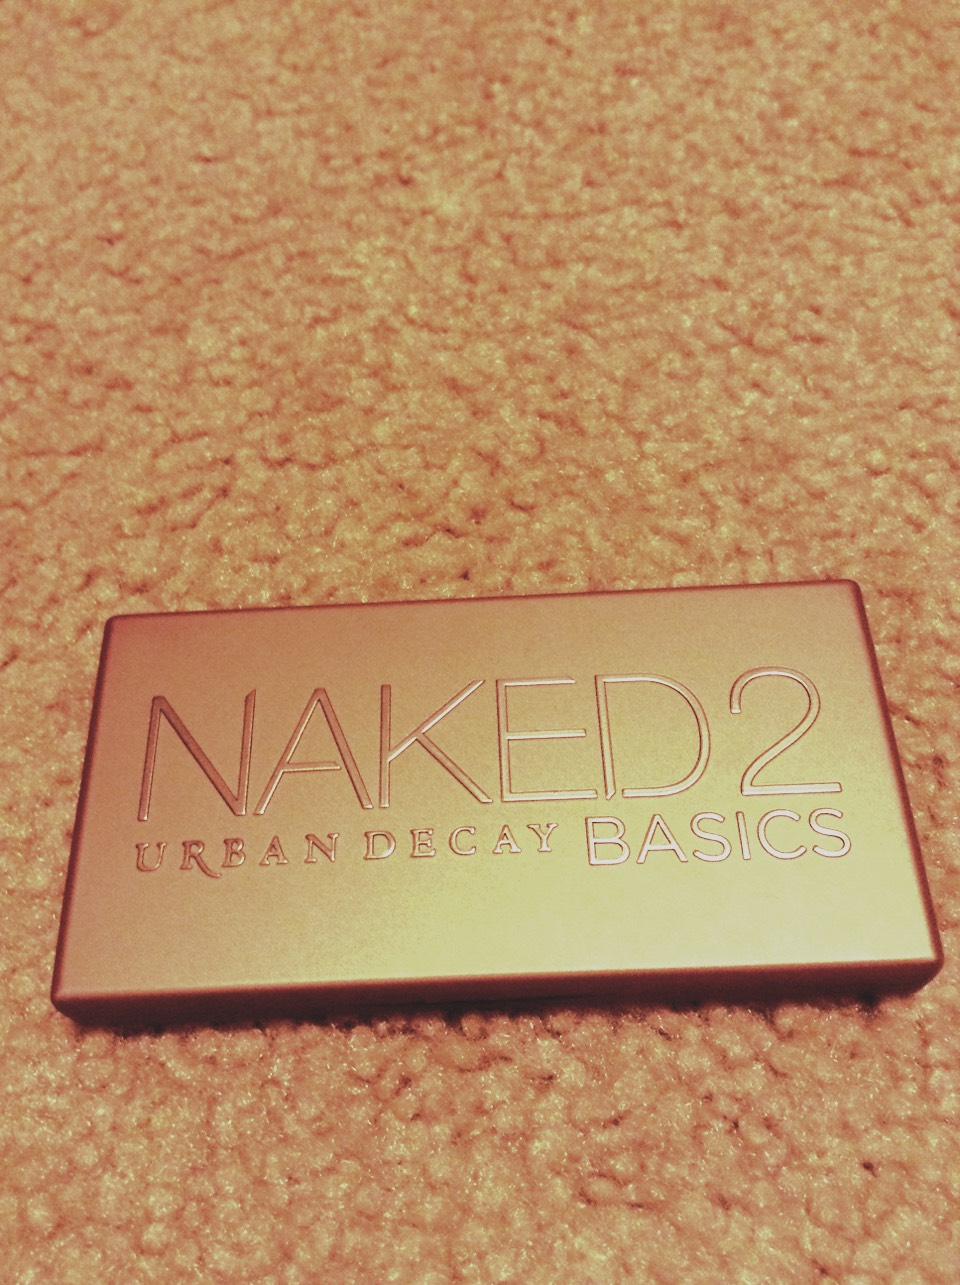 Naked 2 basics from urban decay is awesome! It has all nude colors and all but one are matte! Love this product! You can buy this at sephora for $29